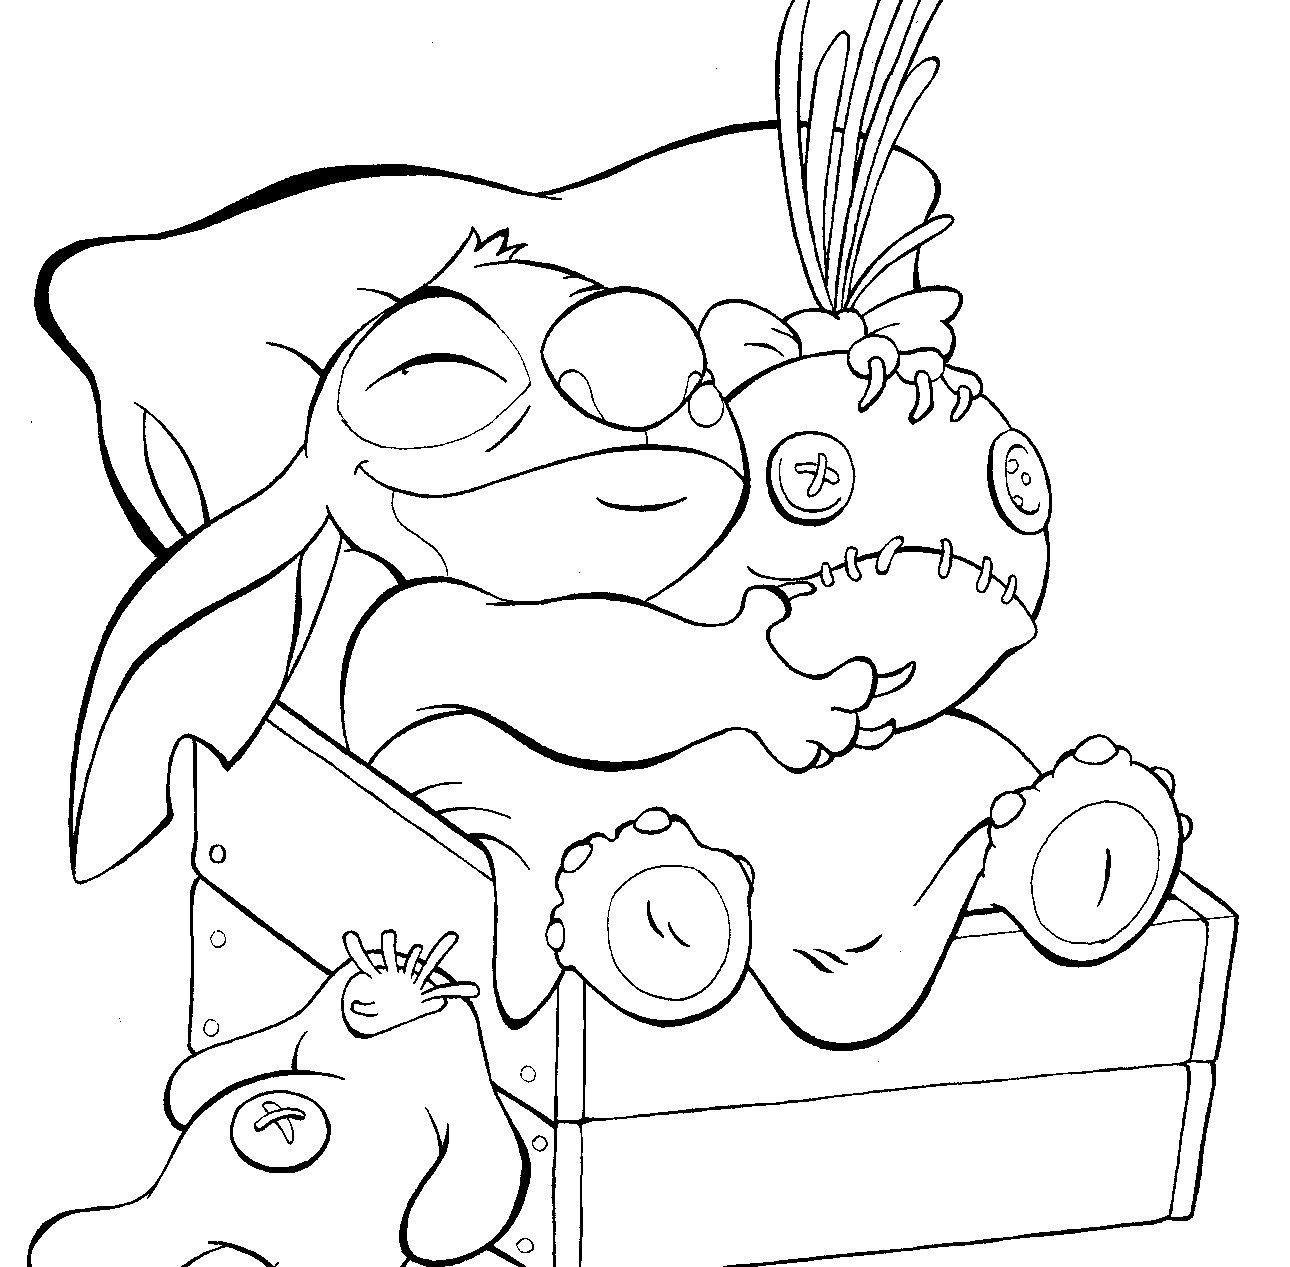 click on the below best printable stitch coloring pages to download and fill the pages with